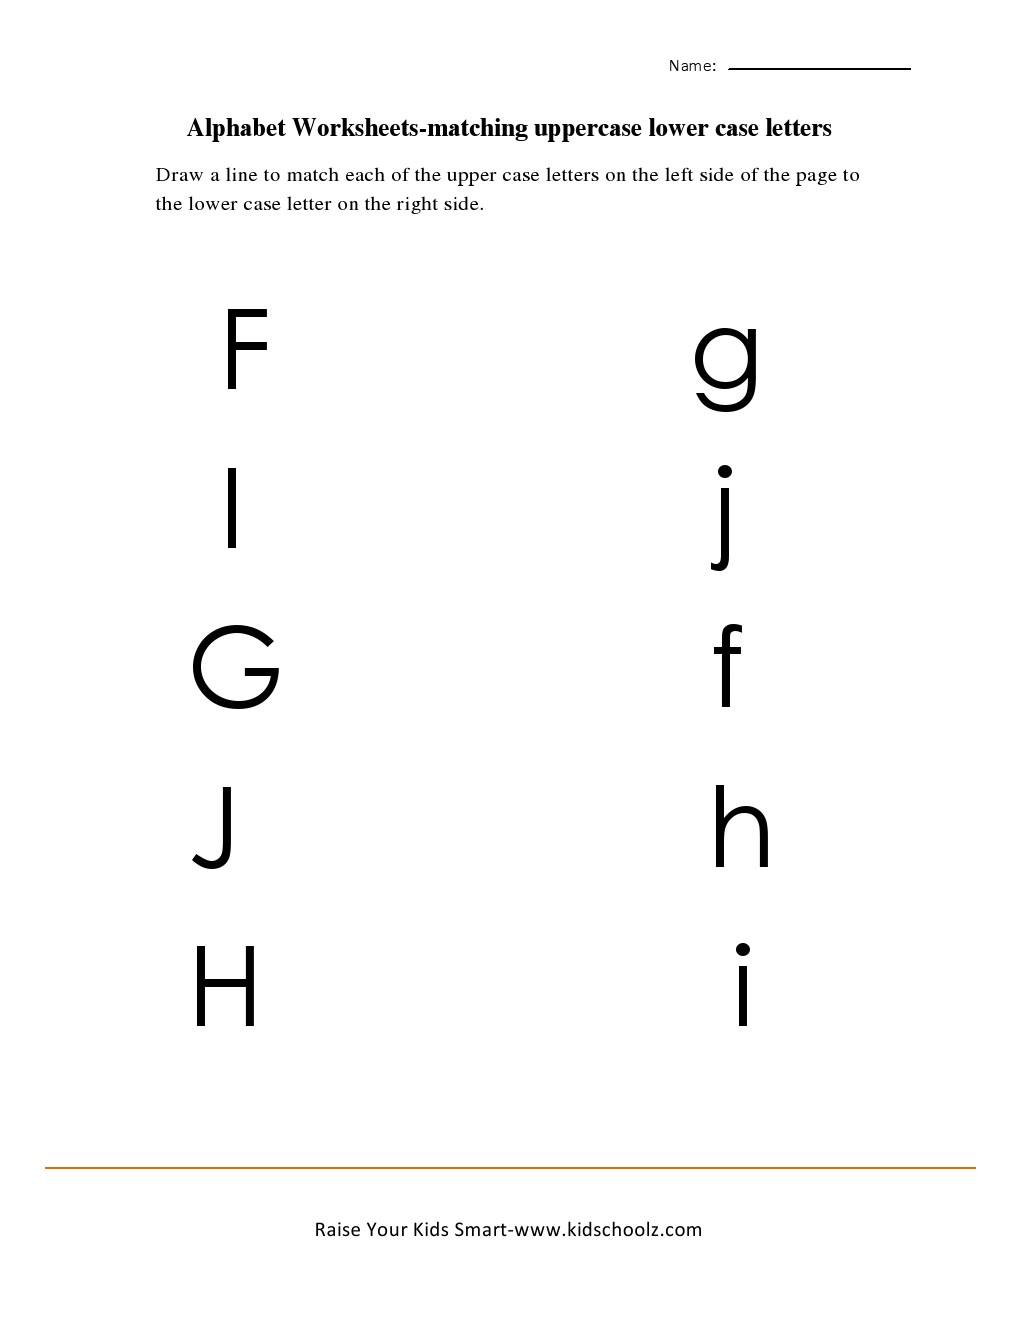 worksheet Matching Letters Worksheets uppercase to lowercase alphabets matching f h download